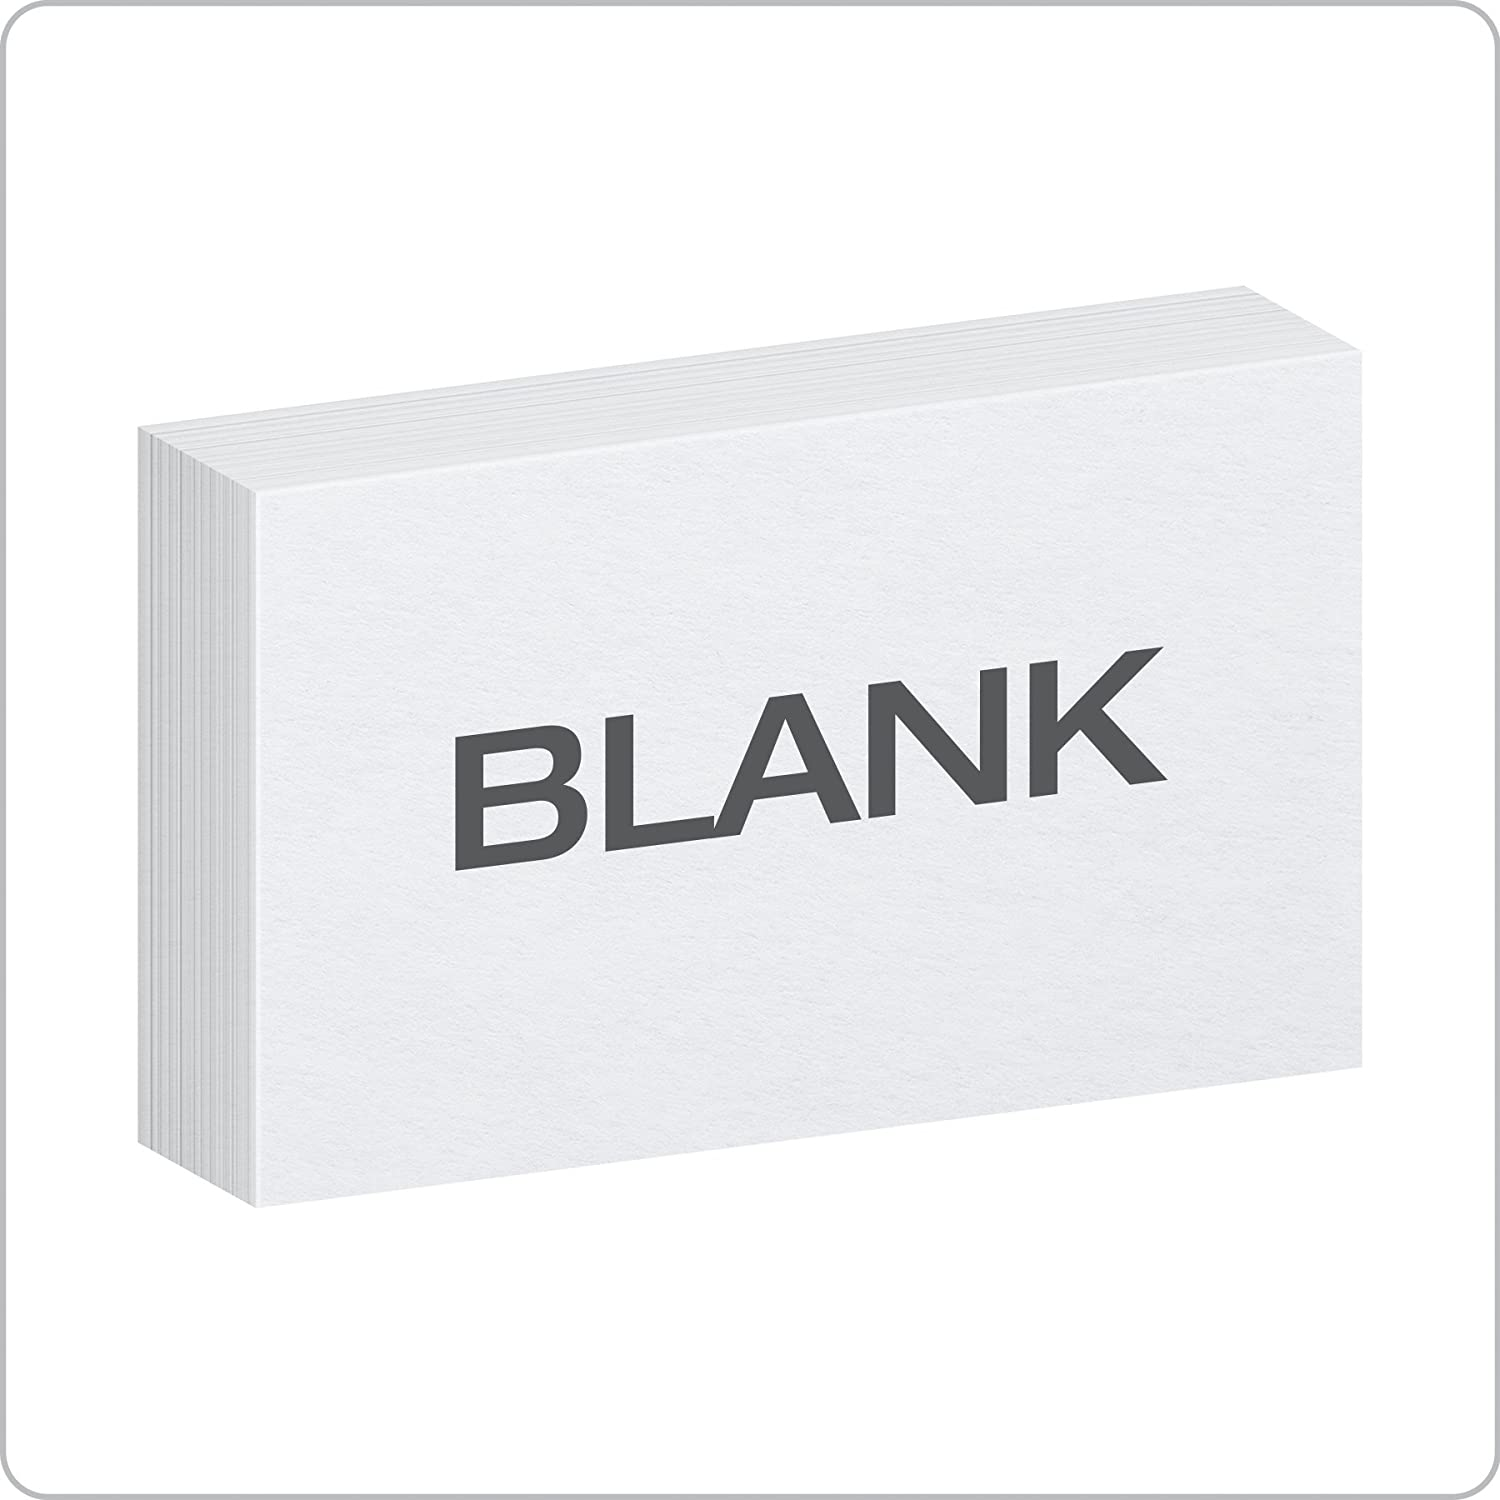 Oxford 225 X 25 Inches Blank Ruled Index Card, 22500 Count, White (1001225) Inside 3 X 5 Index Card Template